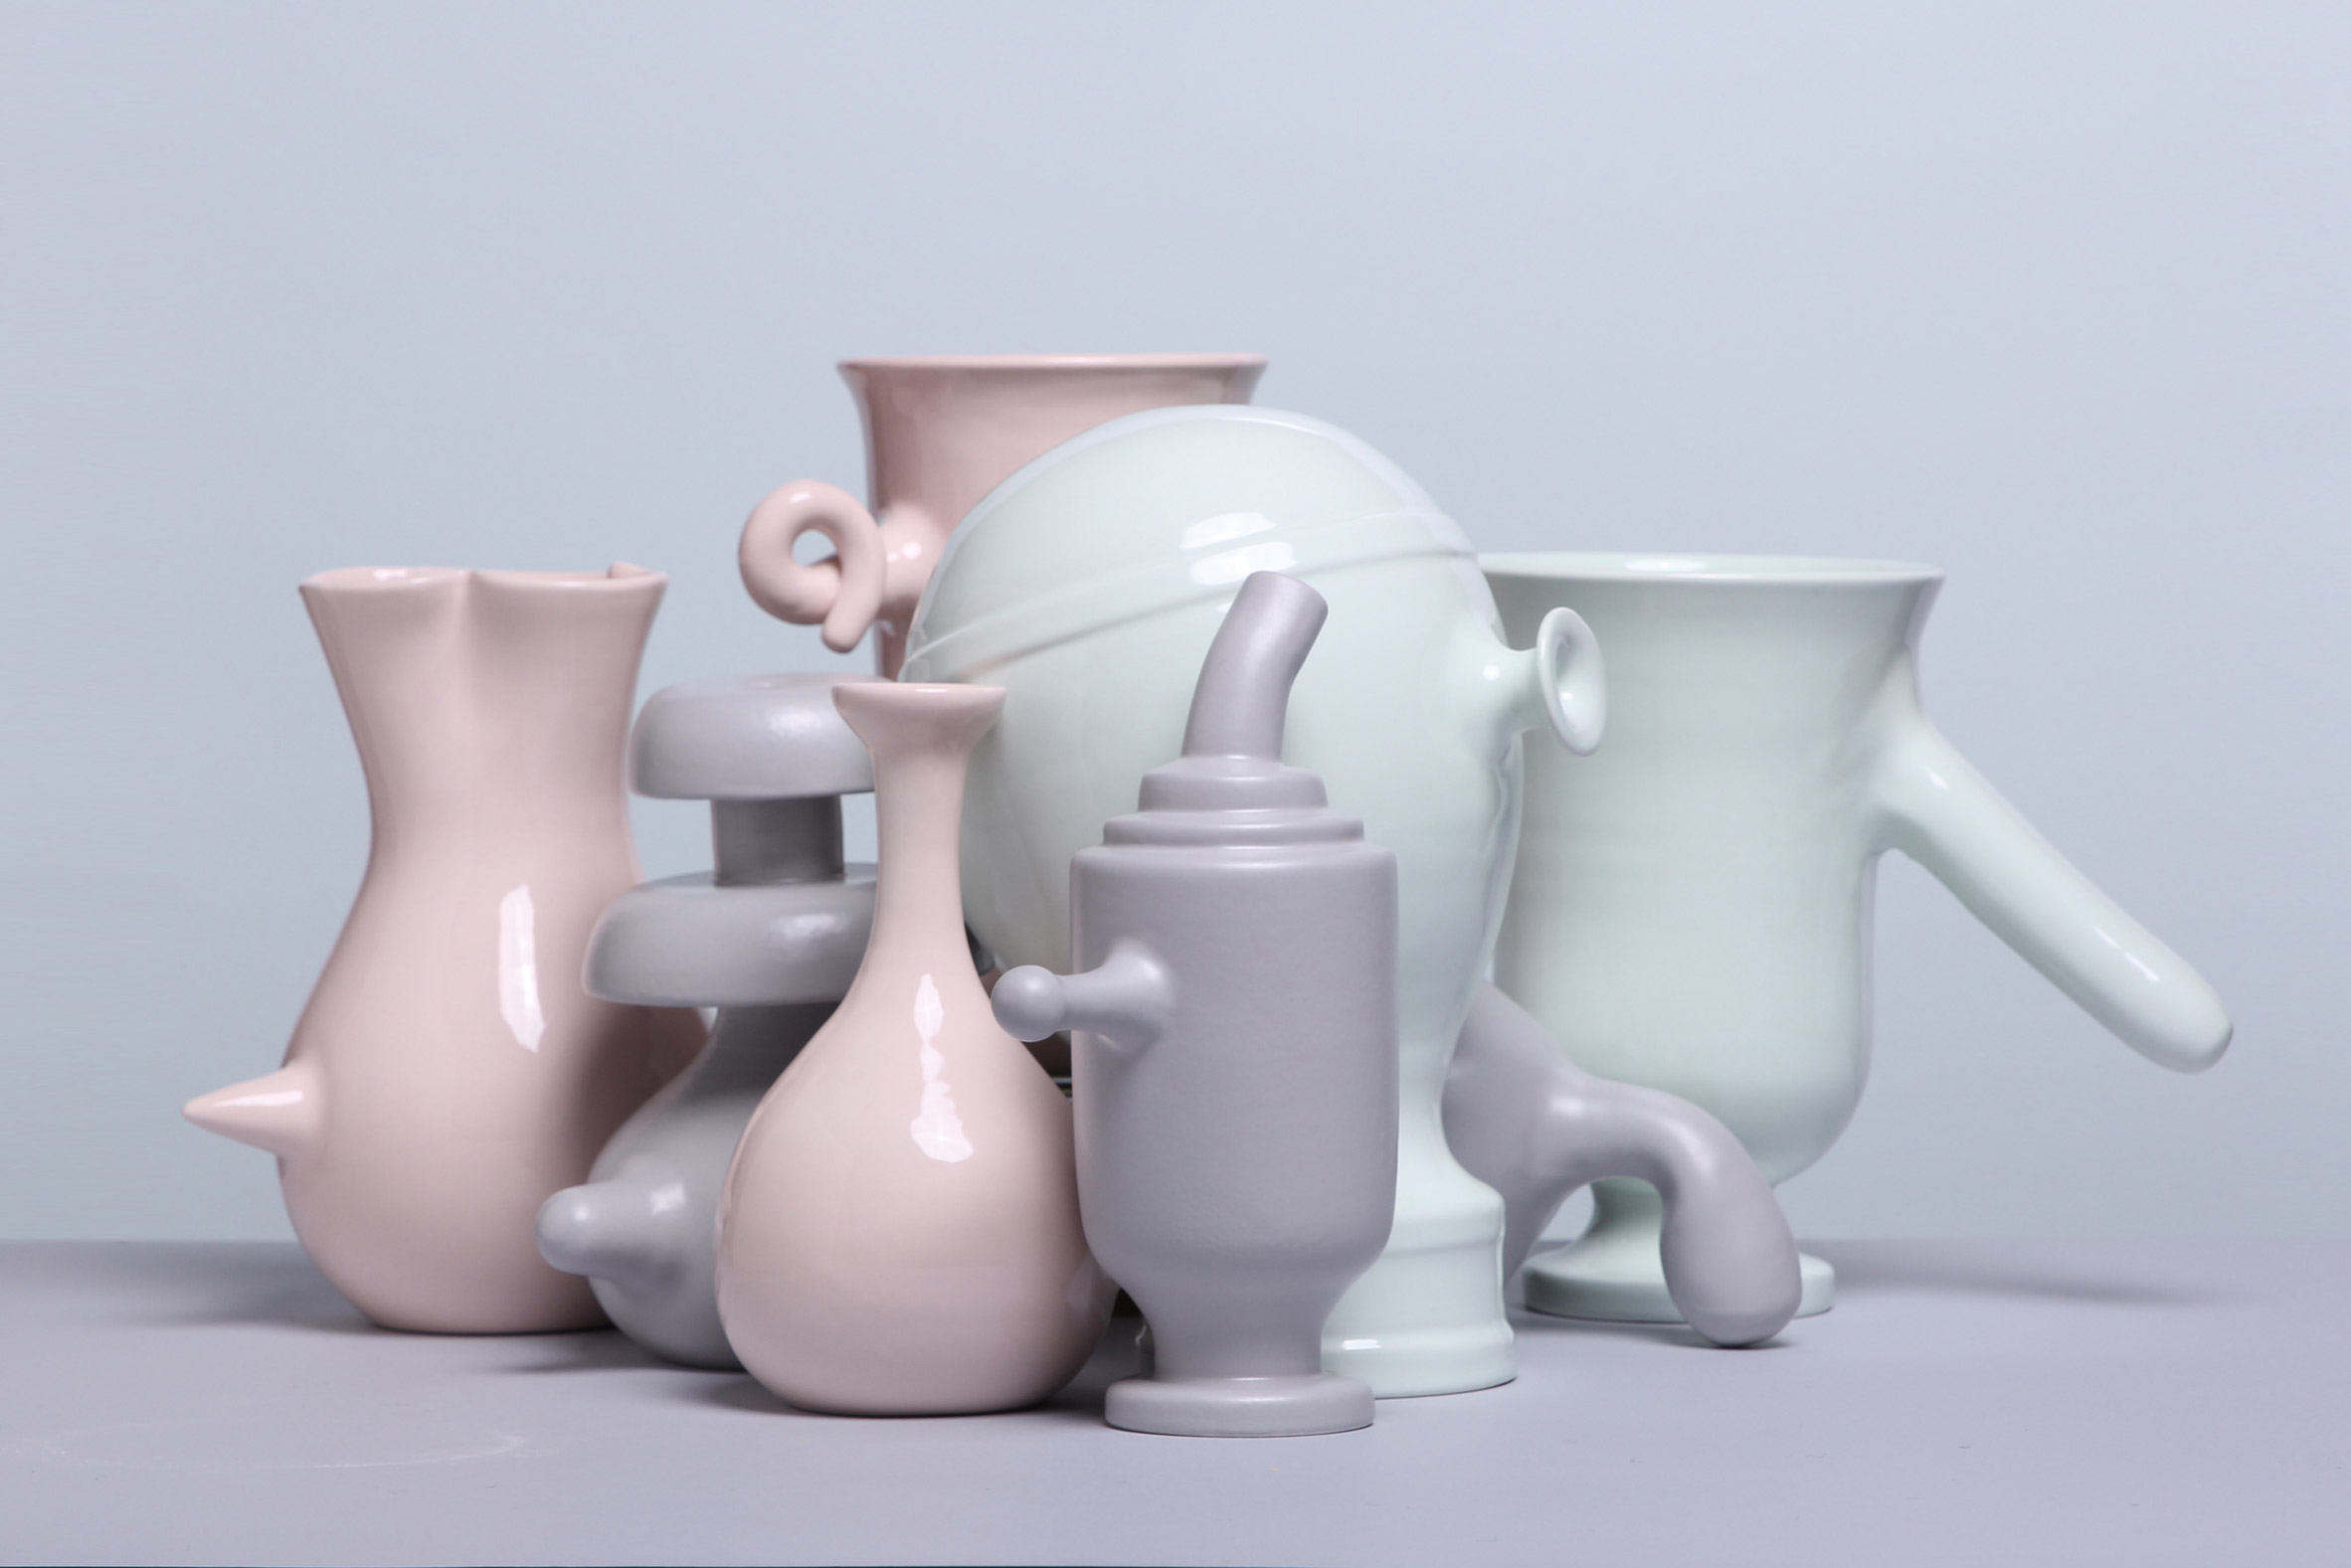 Phallic bumps and curly tails characterise Matteo Cibic's vase-a-day project